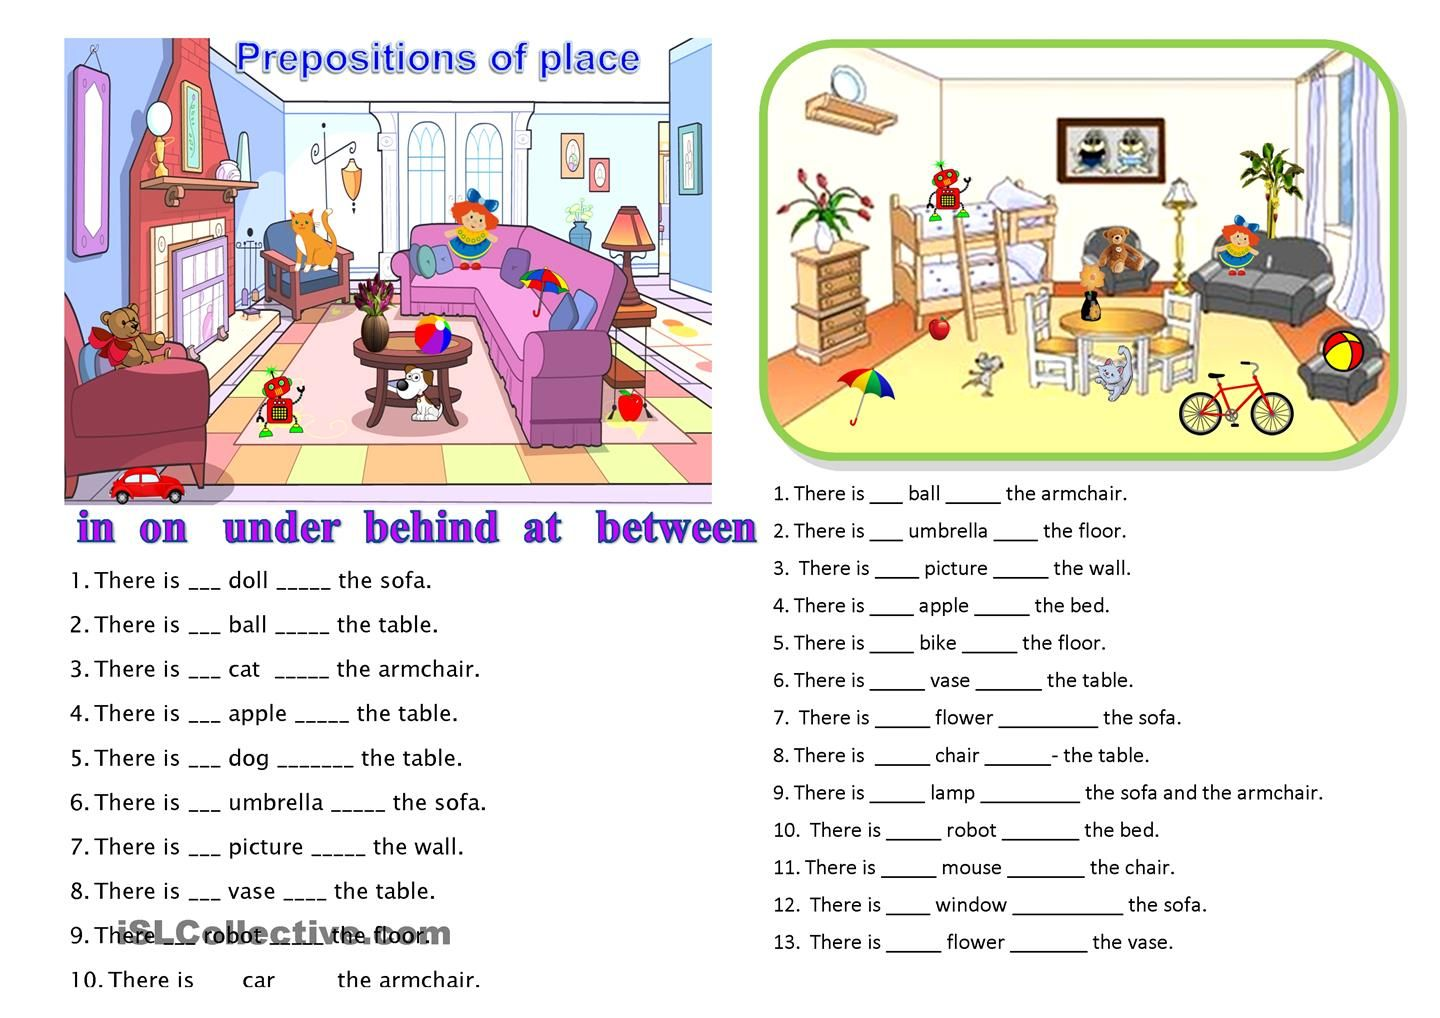 medium resolution of Preposition Worksheet For Class 1   Printable Worksheets and Activities for  Teachers